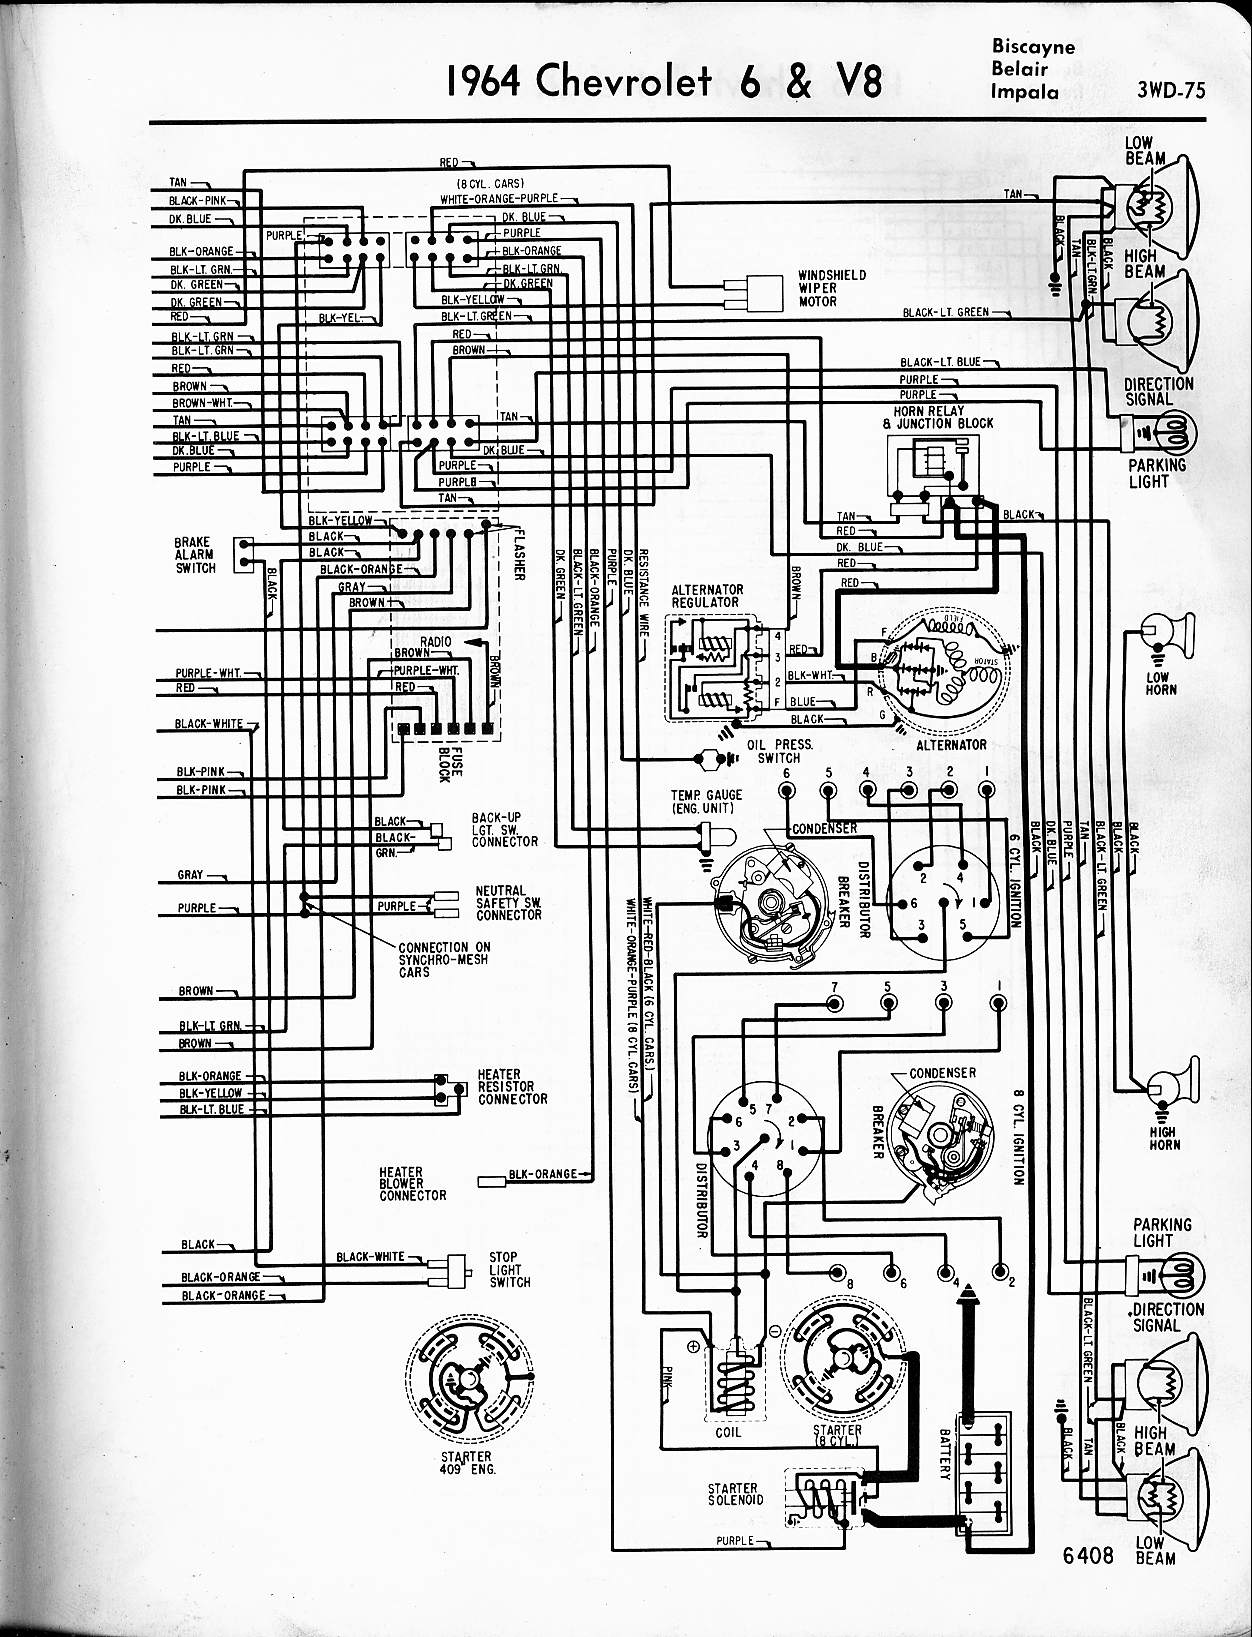 Dodge Avenger Asd Relay Location together with Arduino H Bridge Wiring Diagram additionally 1964 Chevelle Fuse Box Diagram moreover 752372 1995 F 350 7 3 Powerstroke Being A Pain furthermore 12715 2. on ford regulator diagram